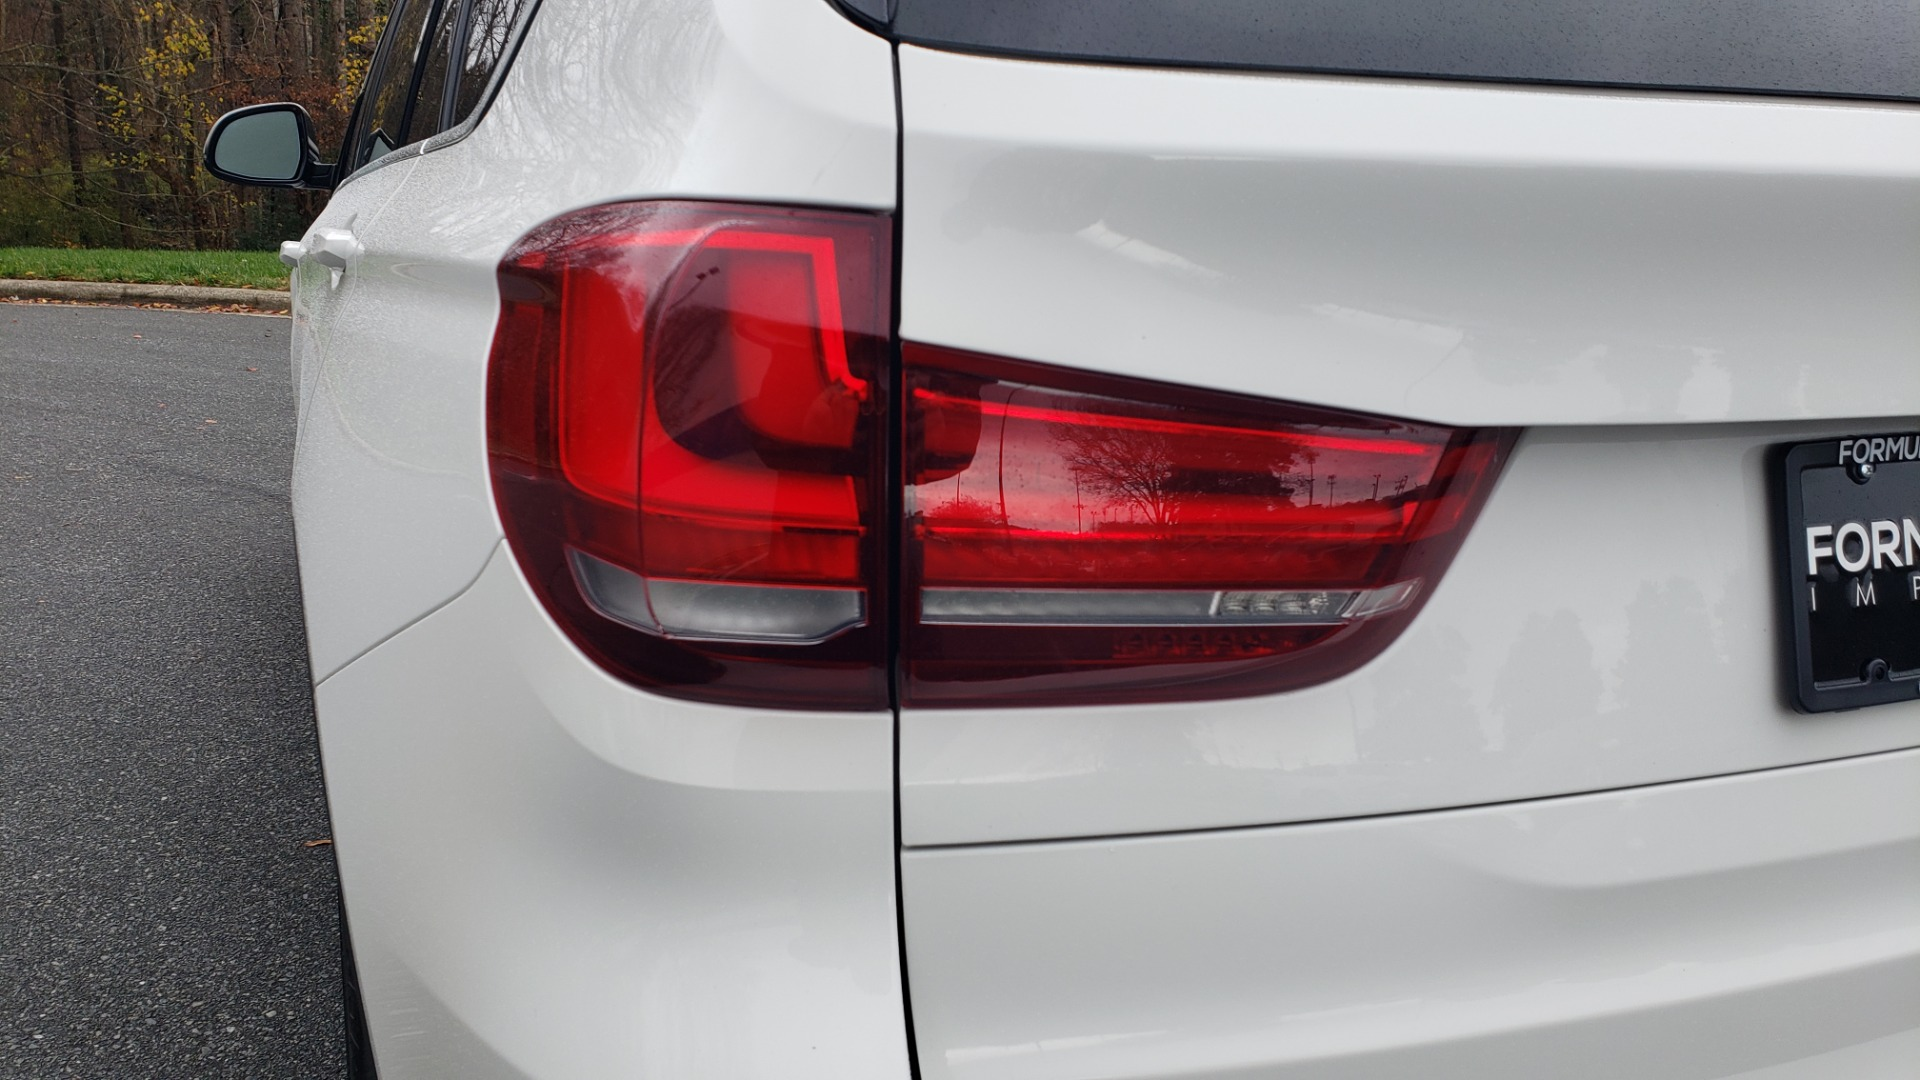 Used 2018 BMW X5 XDRIVE35I / AWD / NAV / HTD STS / SUNROOF / REARVIEW for sale Sold at Formula Imports in Charlotte NC 28227 27